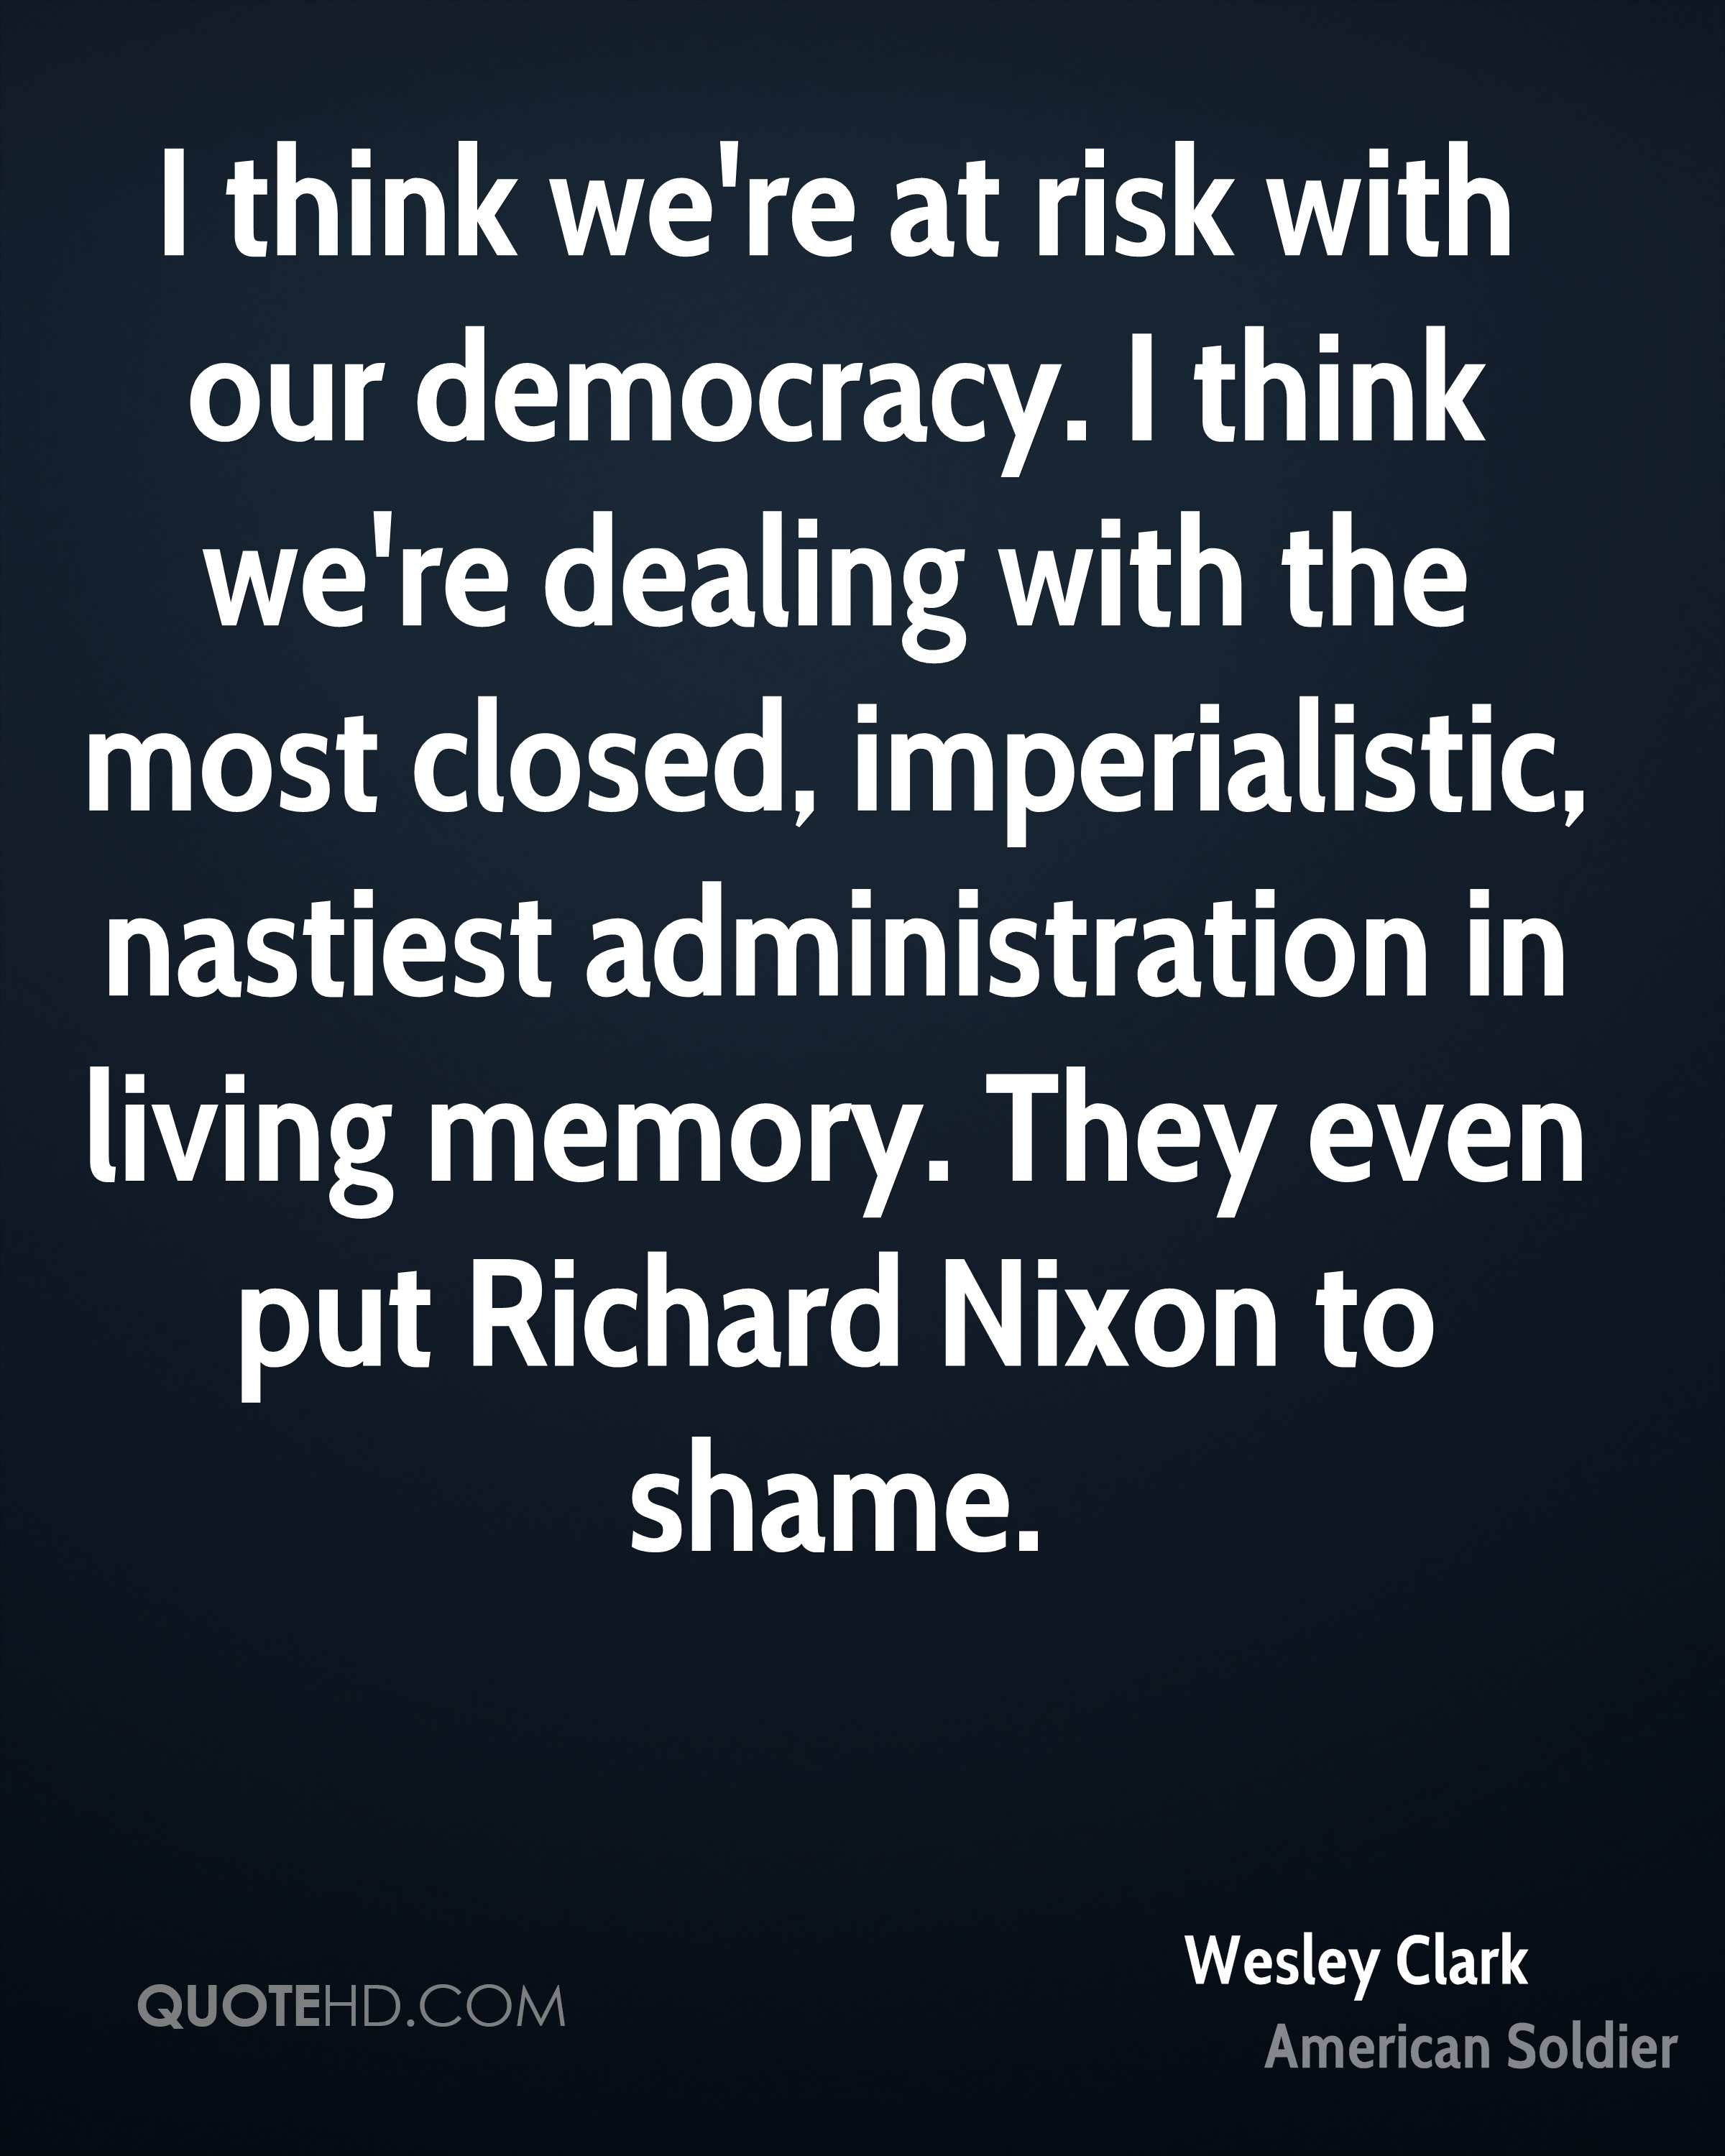 I think we're at risk with our democracy. I think we're dealing with the most closed, imperialistic, nastiest administration in living memory. They even put Richard Nixon to shame.